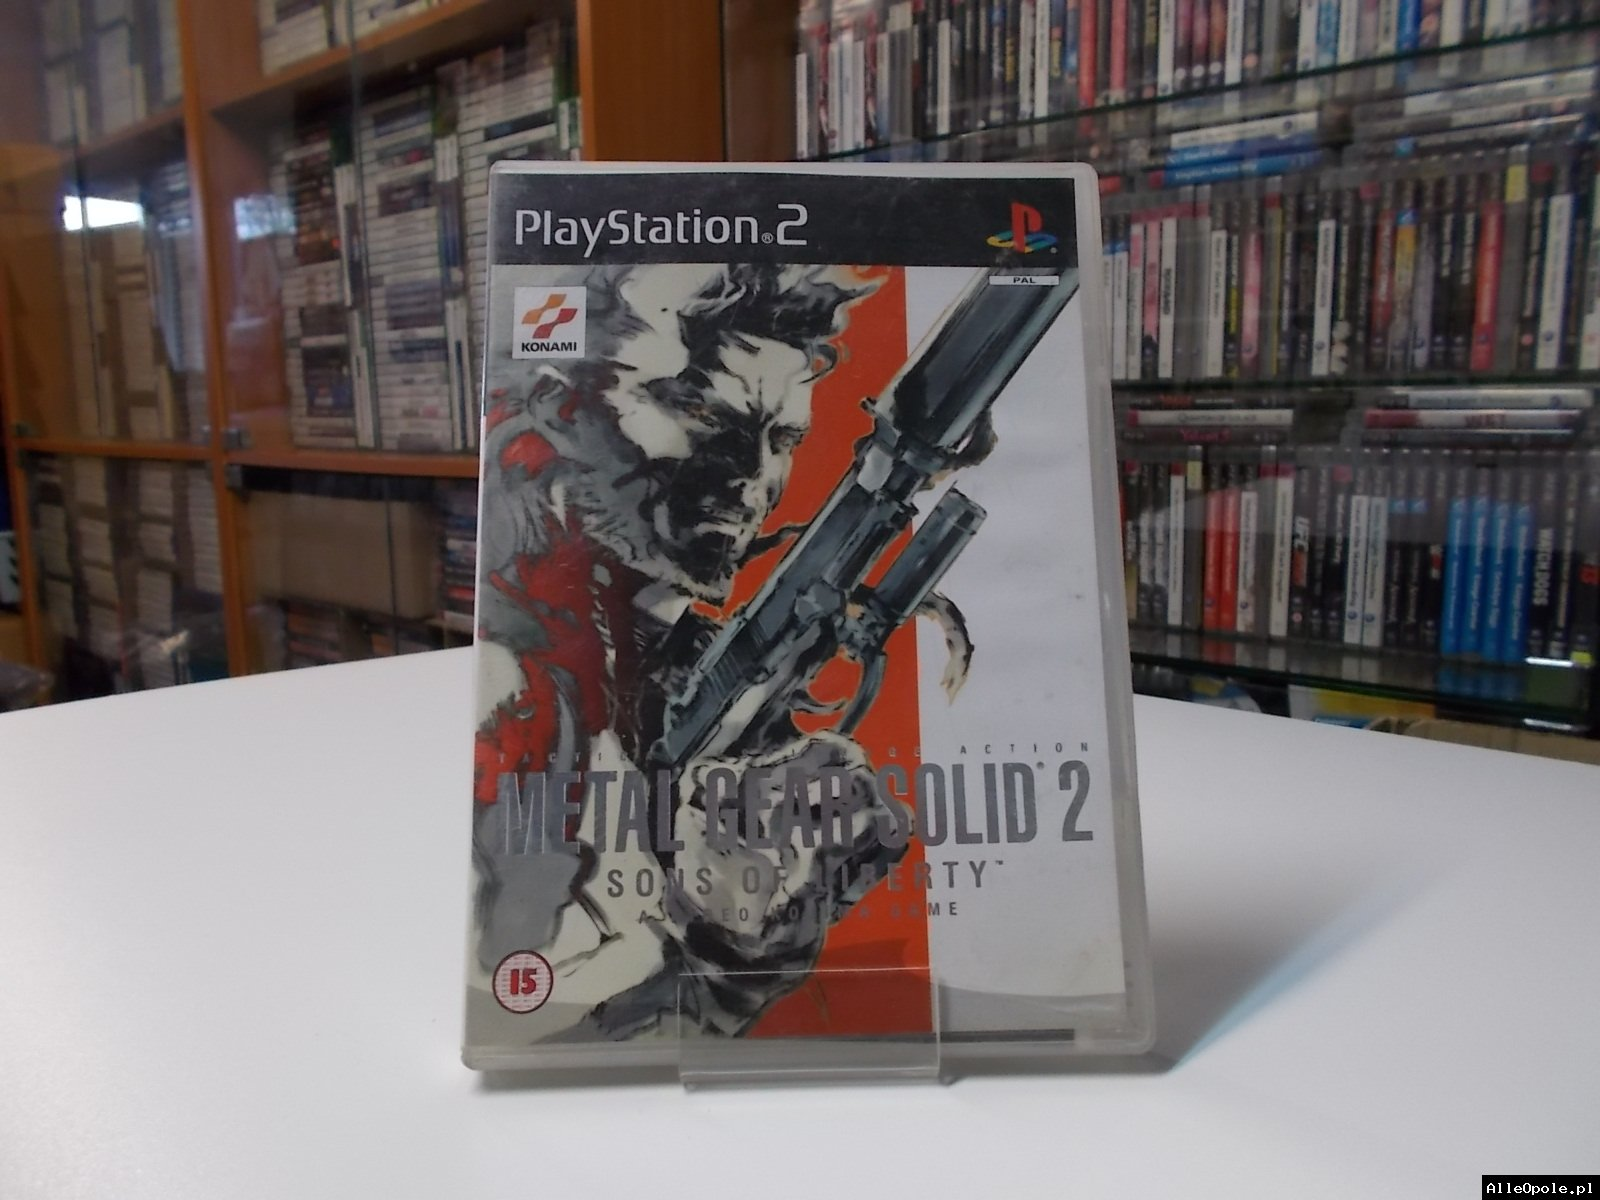 Metal Gear Solid 2 - GRA Ps2 - Opole 0529